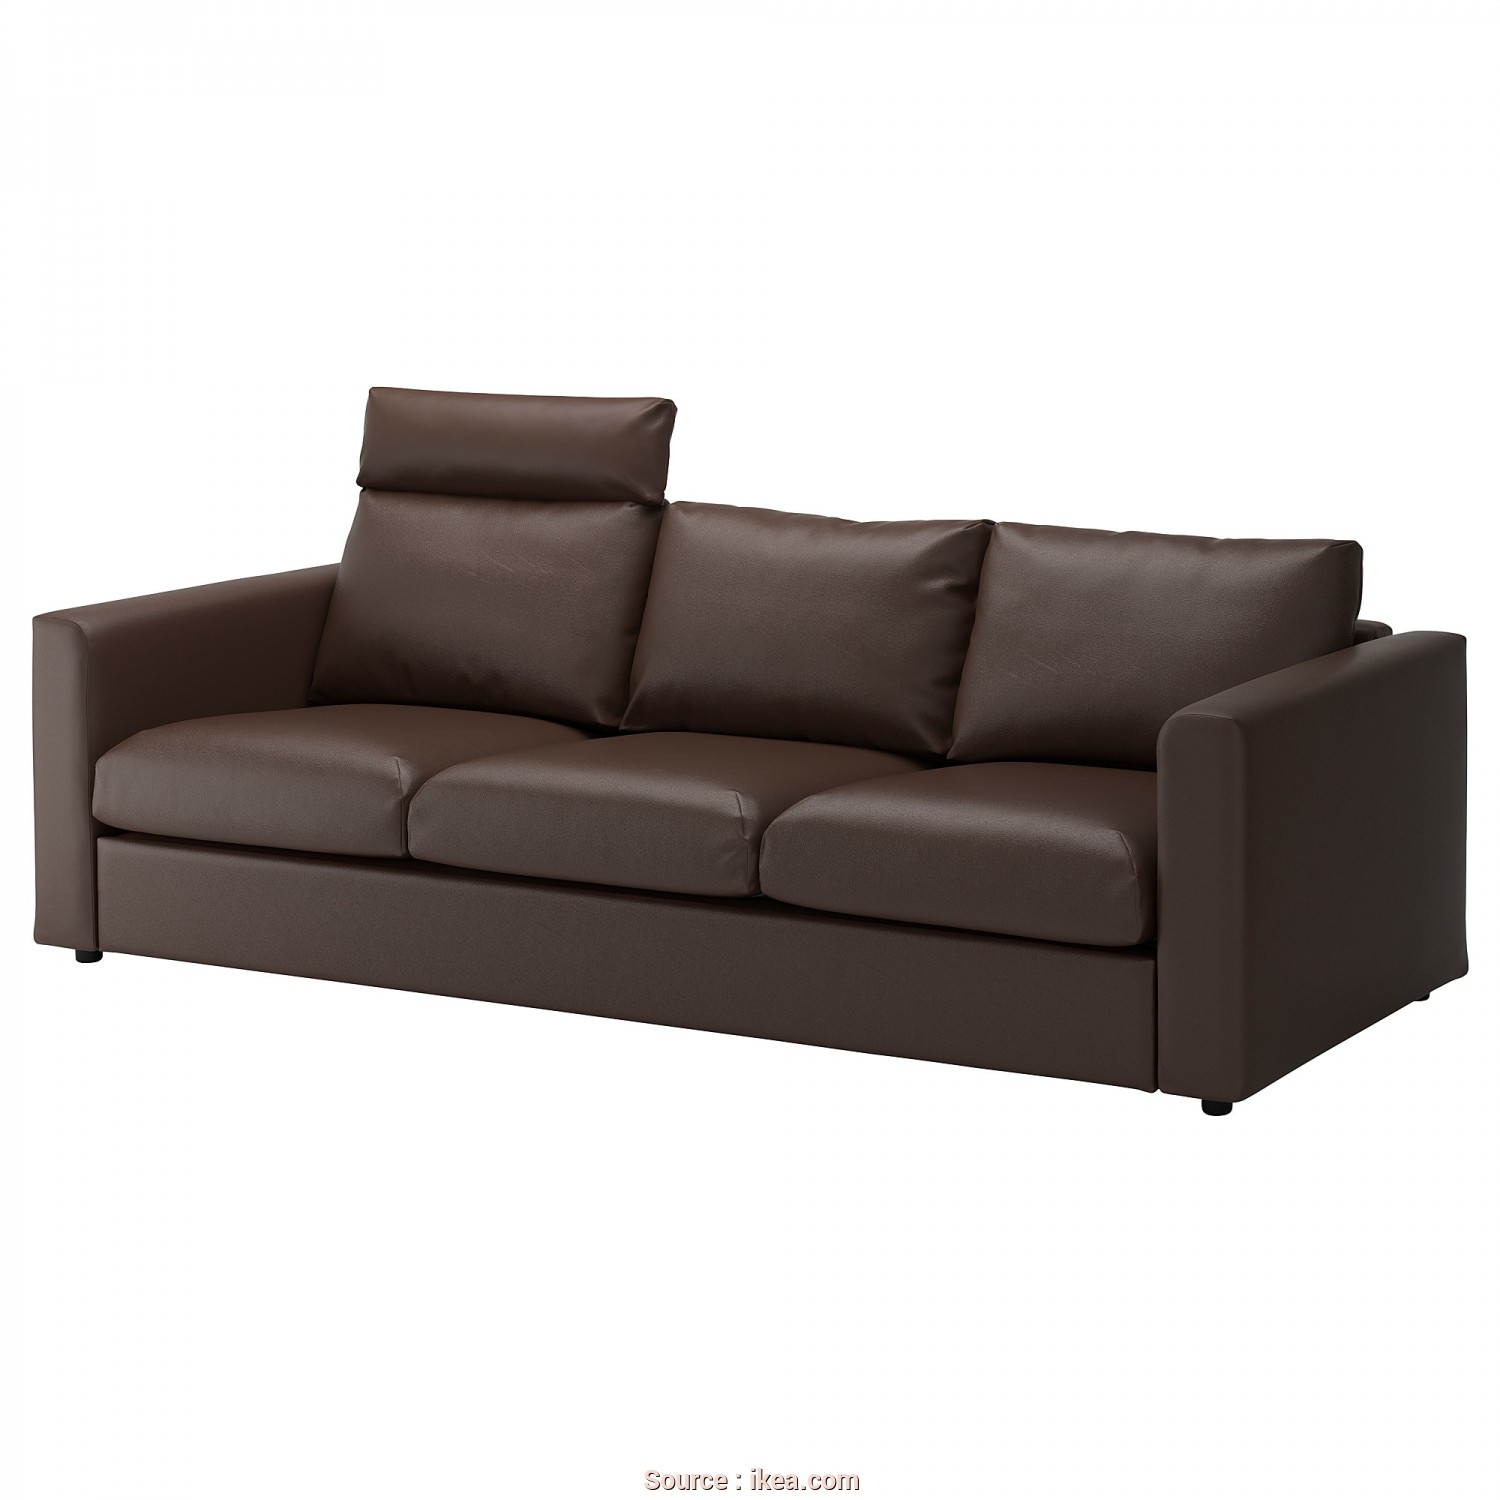 Ikea Divano Timsfors, Superiore IKEA VIMLE 3-Seat Sofa, Cover Is Easy To Keep Clean As It Can